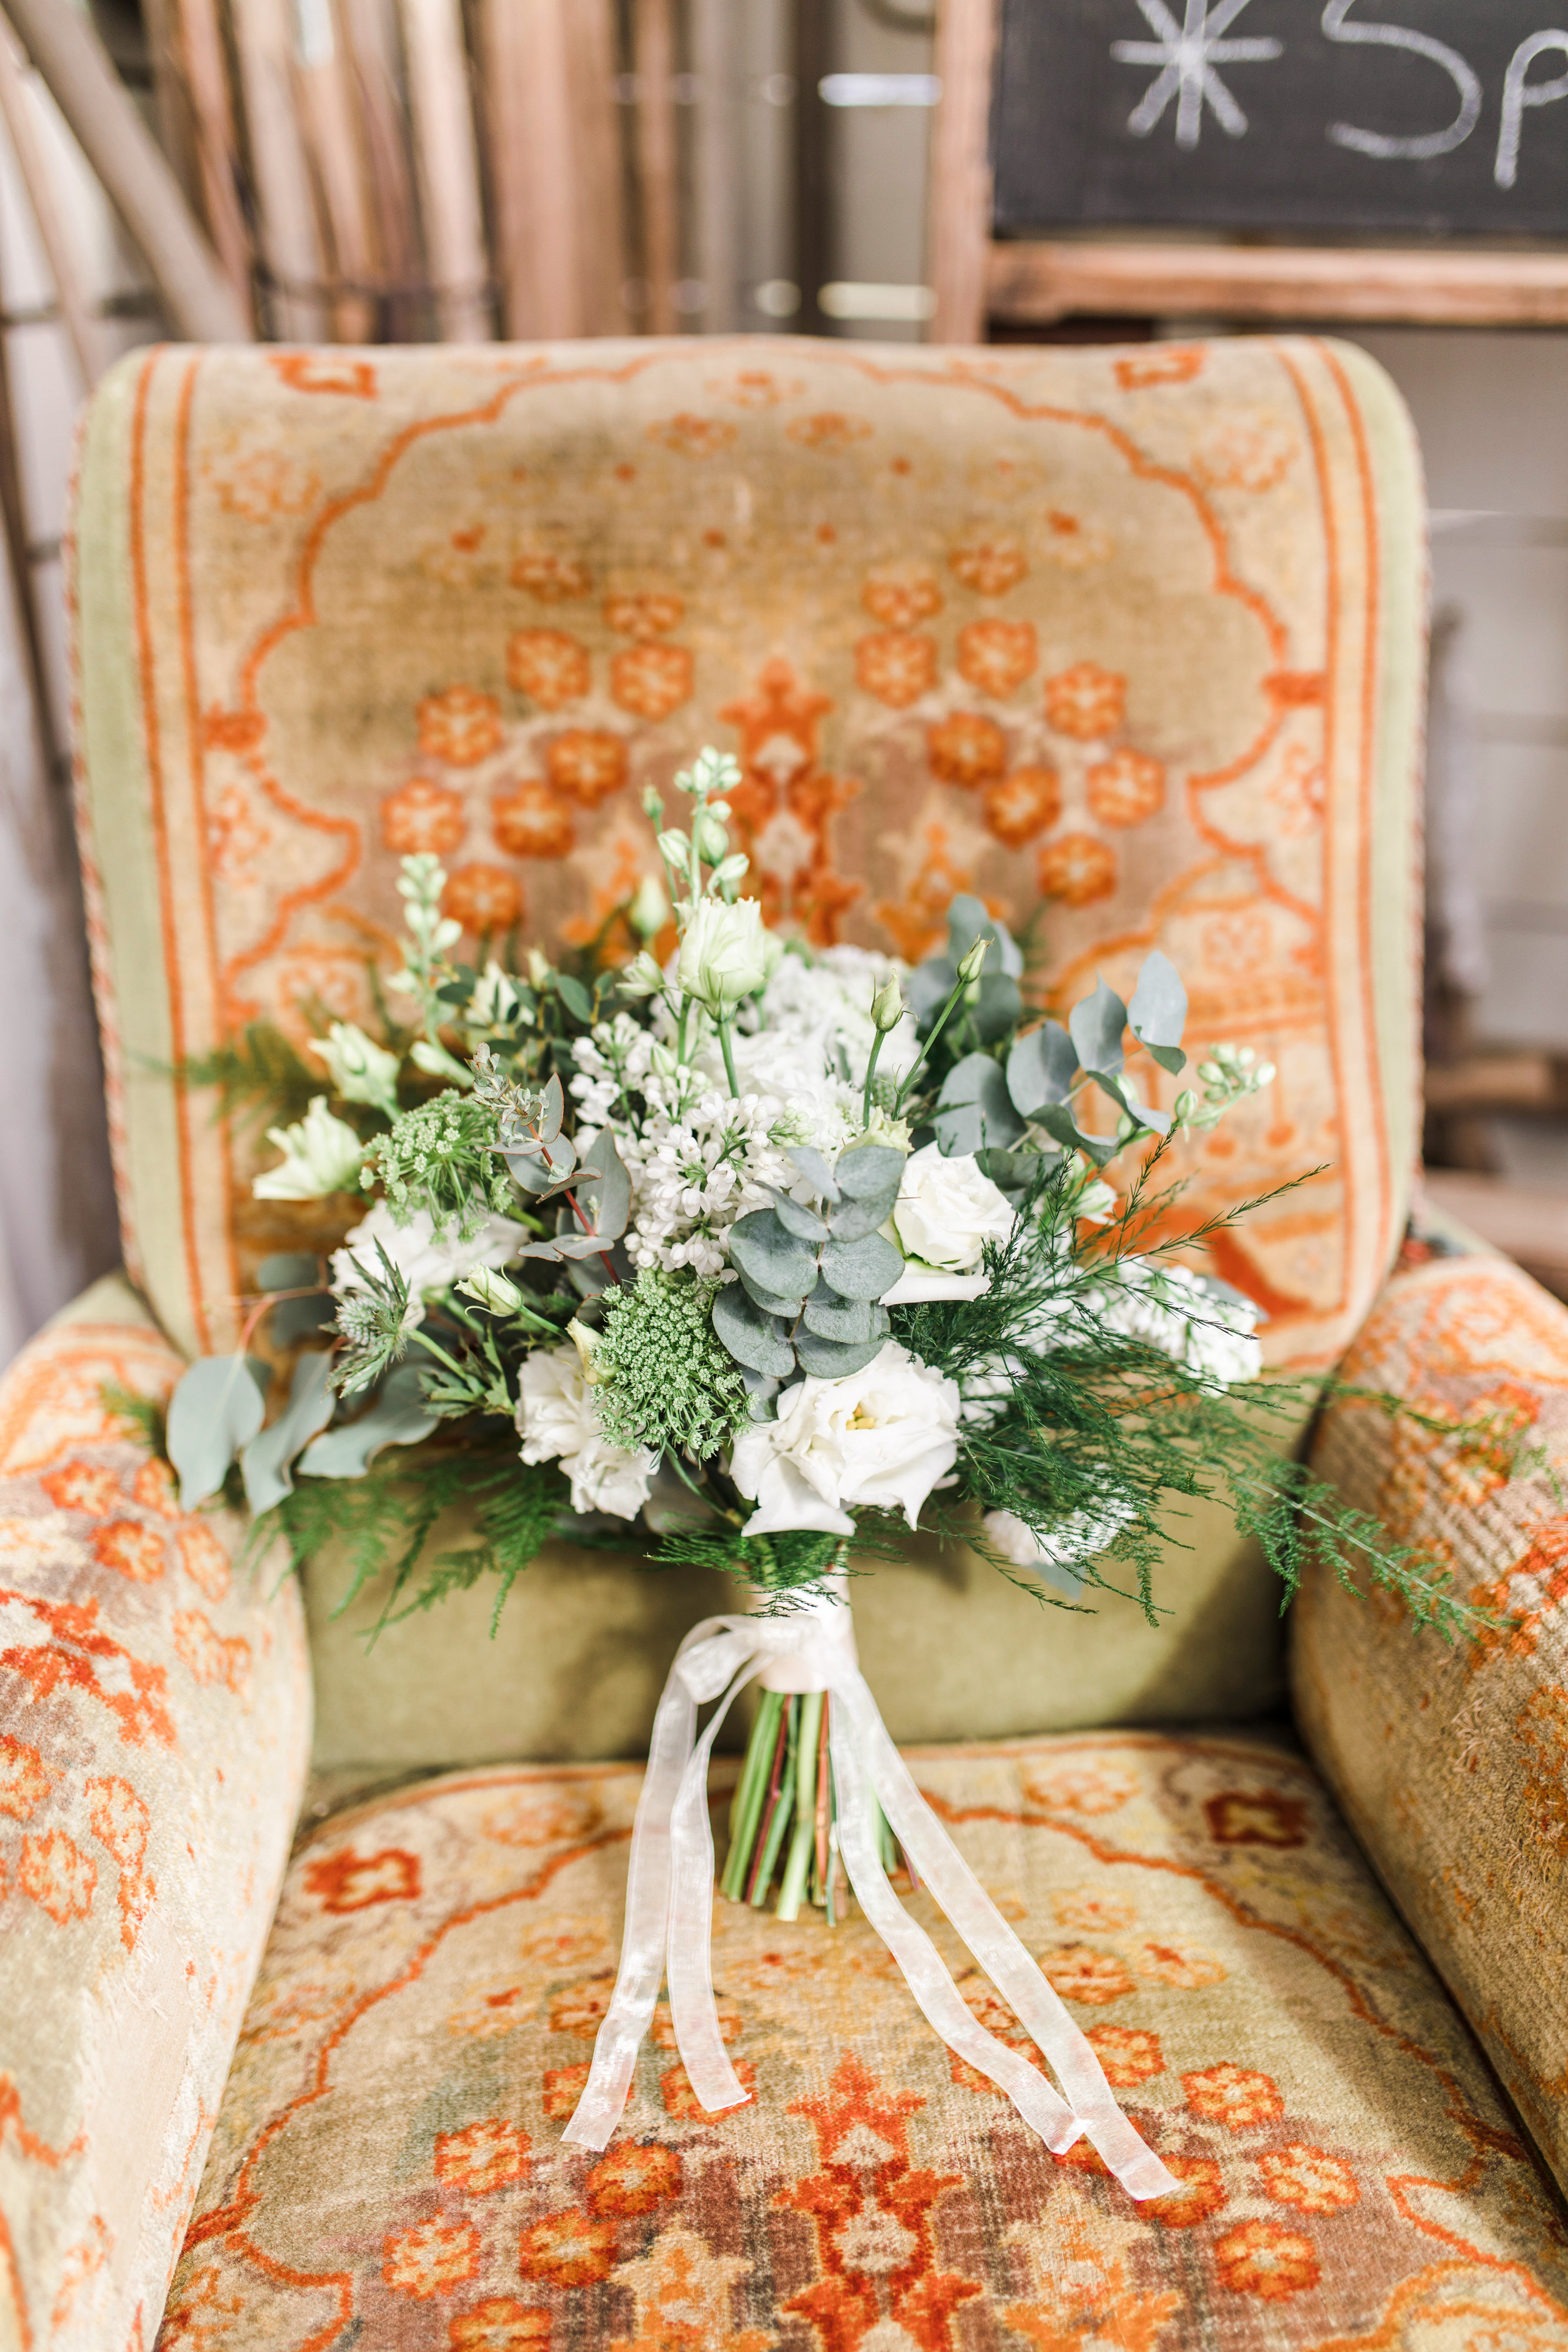 dill and eucalyptus white flower bouquet arrangement with white ribbon